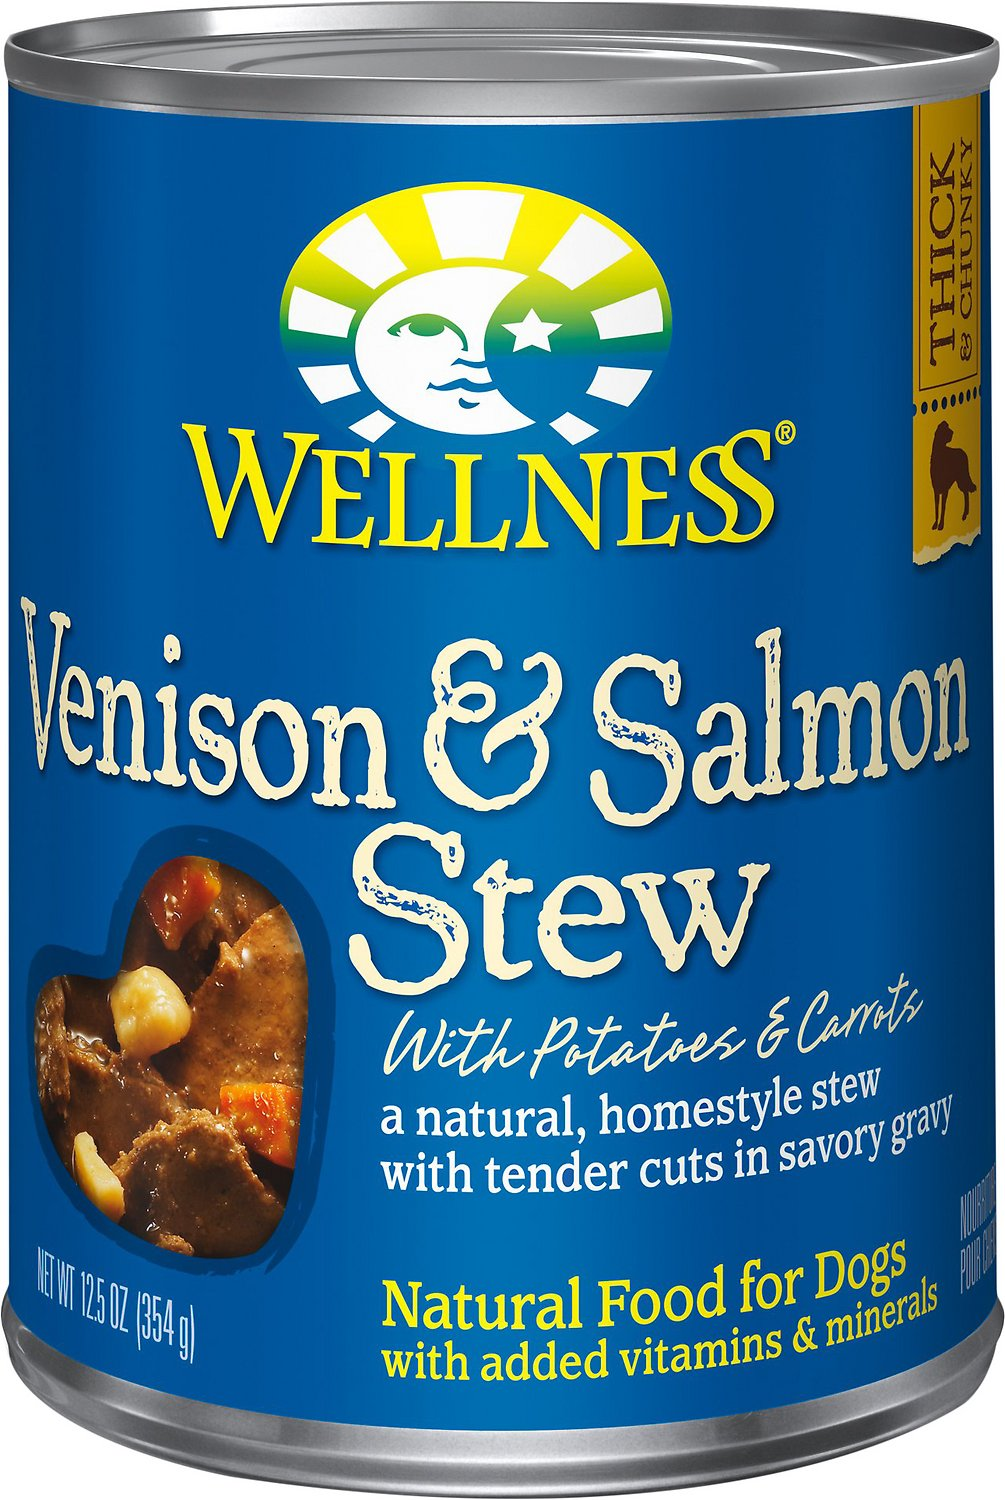 Wellness Venison & Salmon Stew with Potatoes & Carrots Canned Dog Food, 12.5-oz